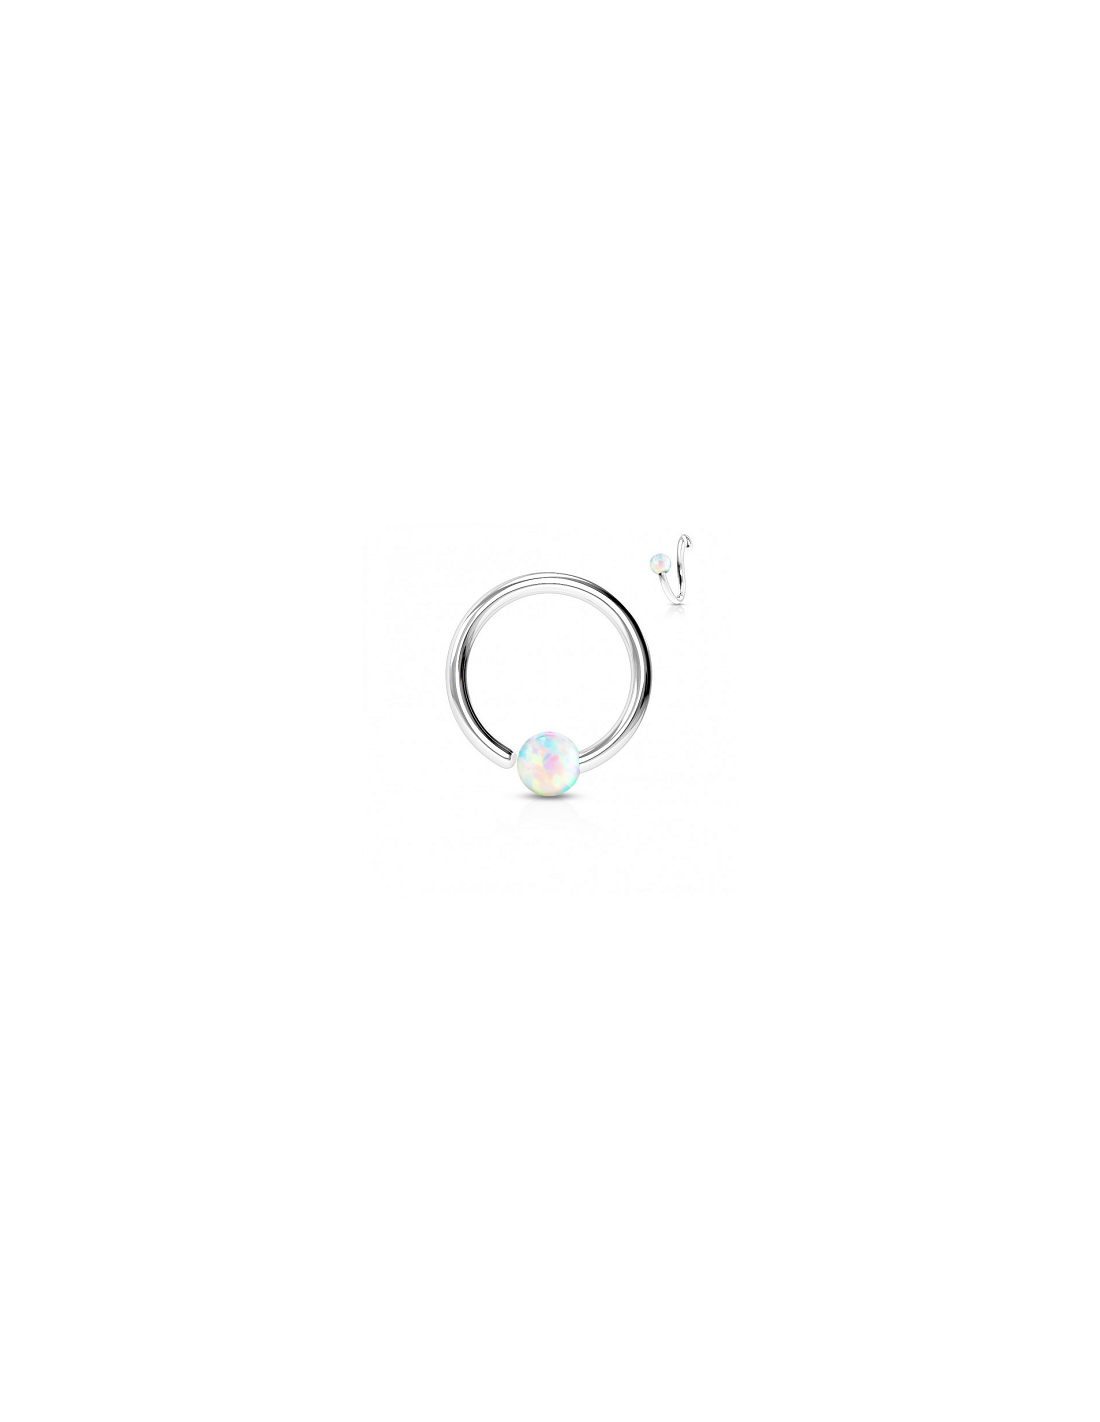 Piercing transparent black ball. Ring opal fixed on